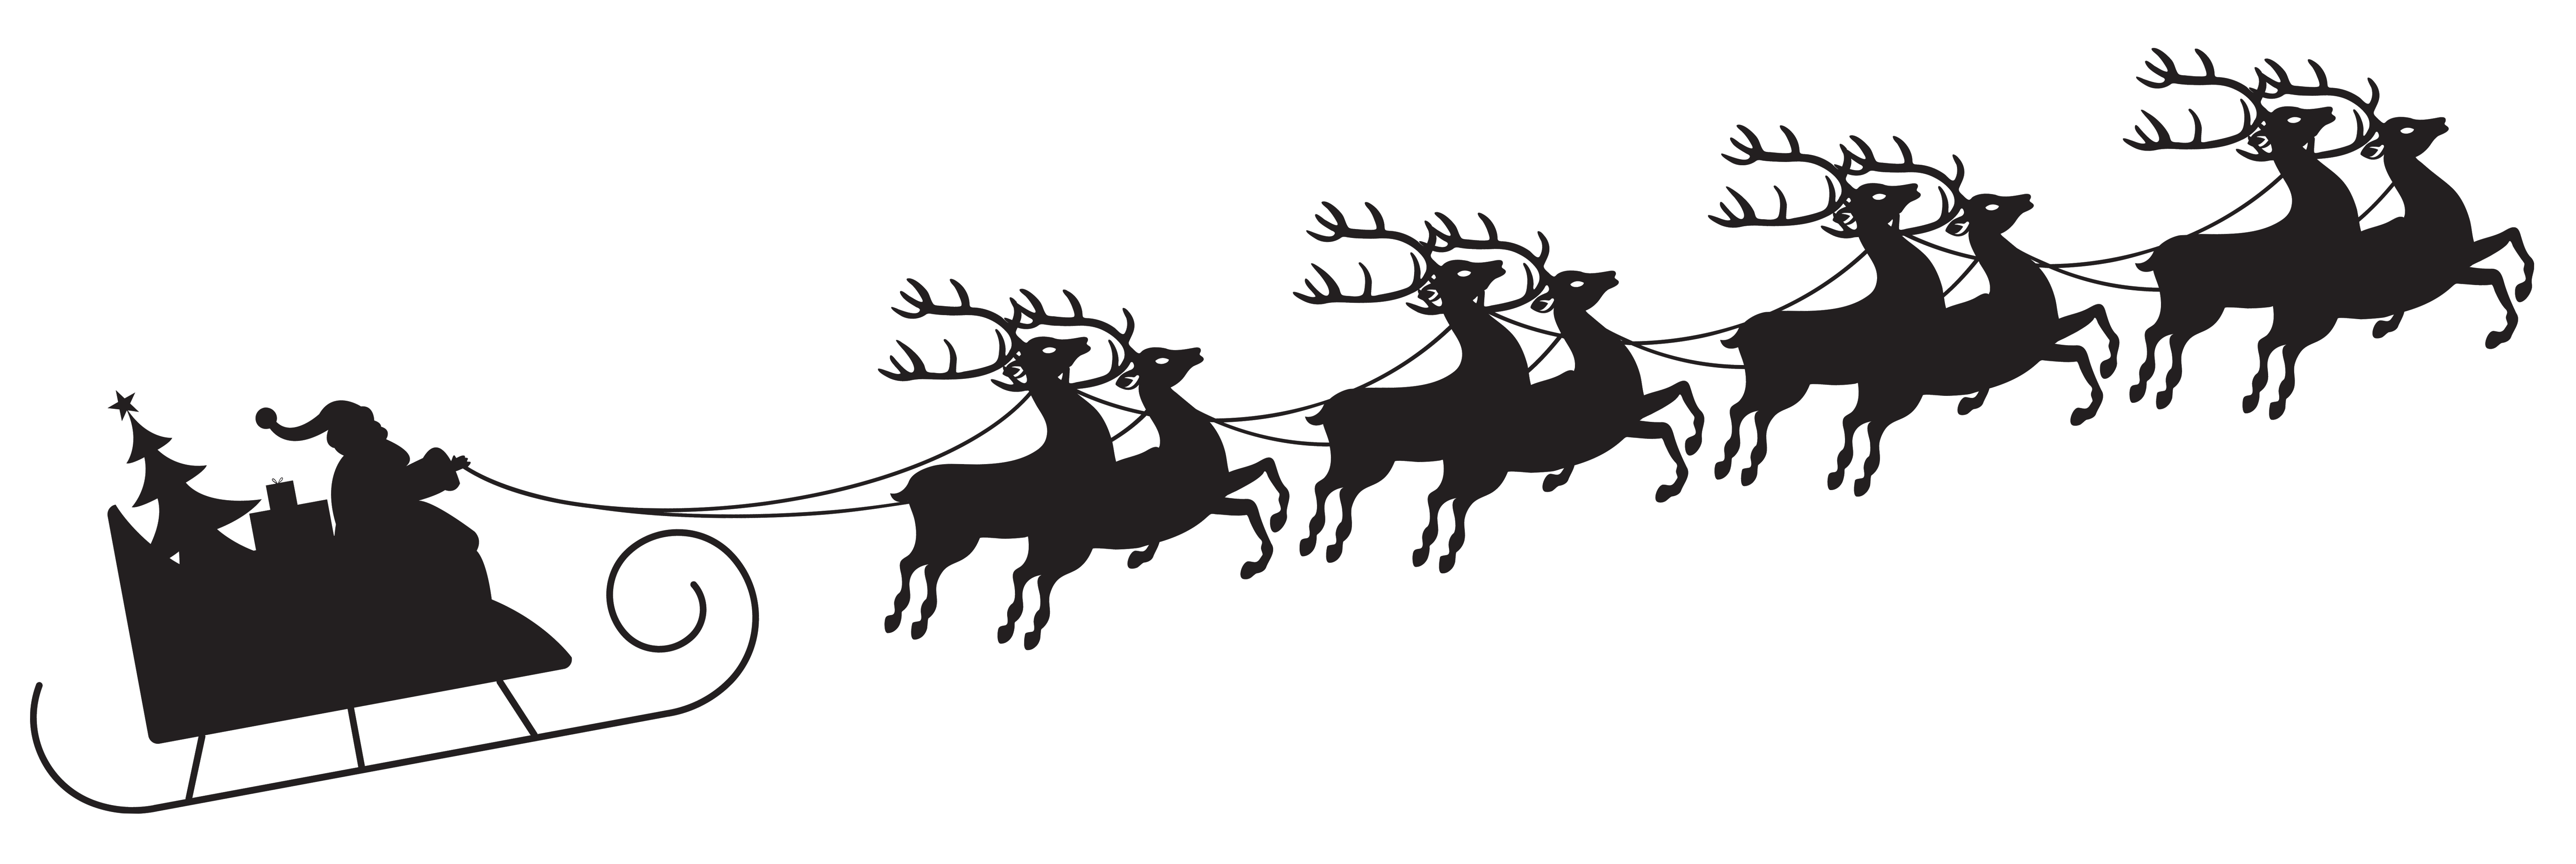 santa and sleigh clipart free - Clipground